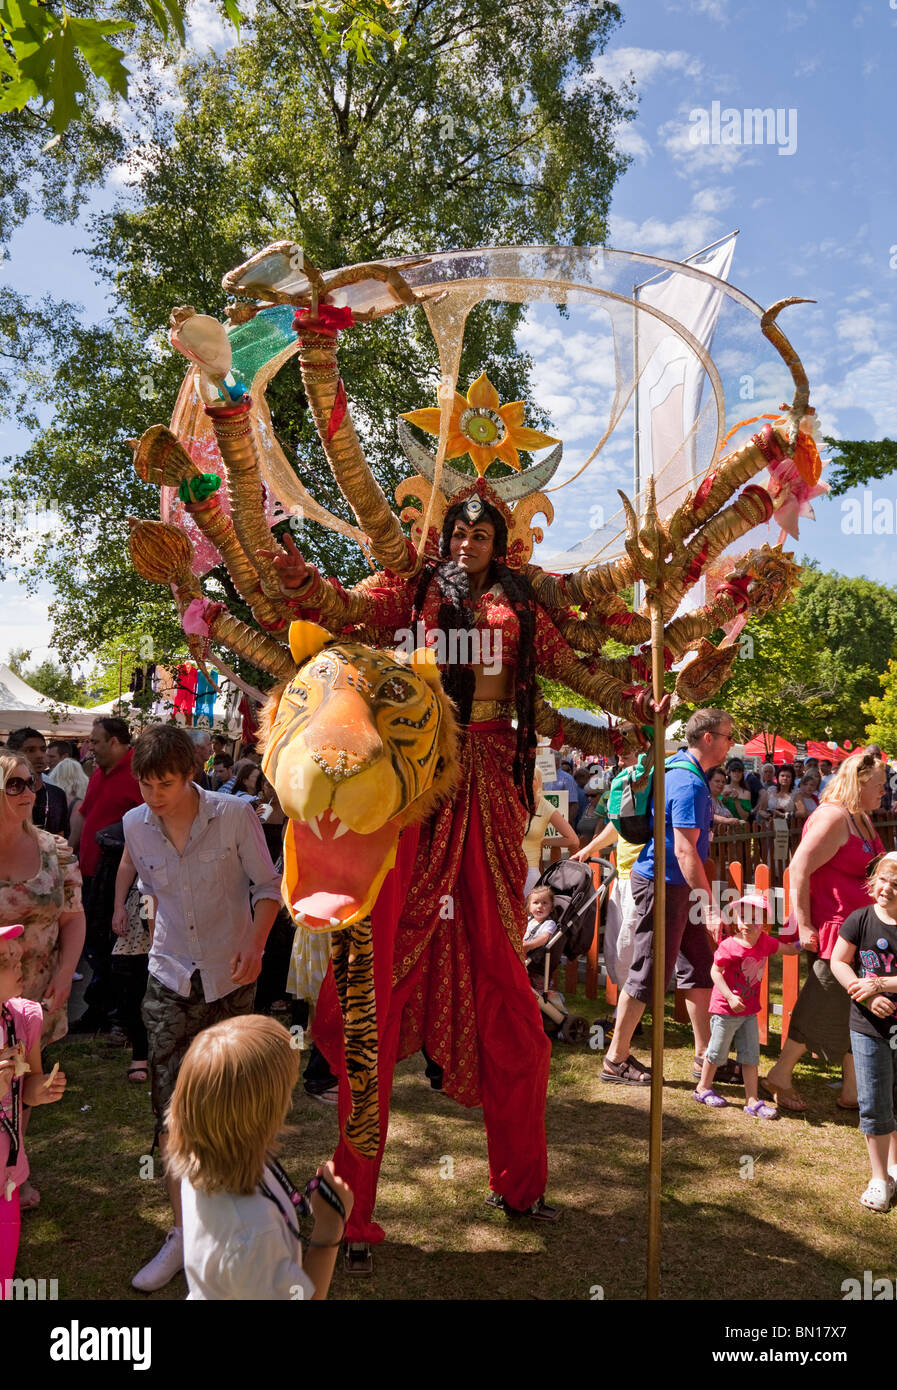 Stilt-walking actor portraying the Hindu goddess Durga, walking through the crowd to attract an audience; Glasgow - Stock Image